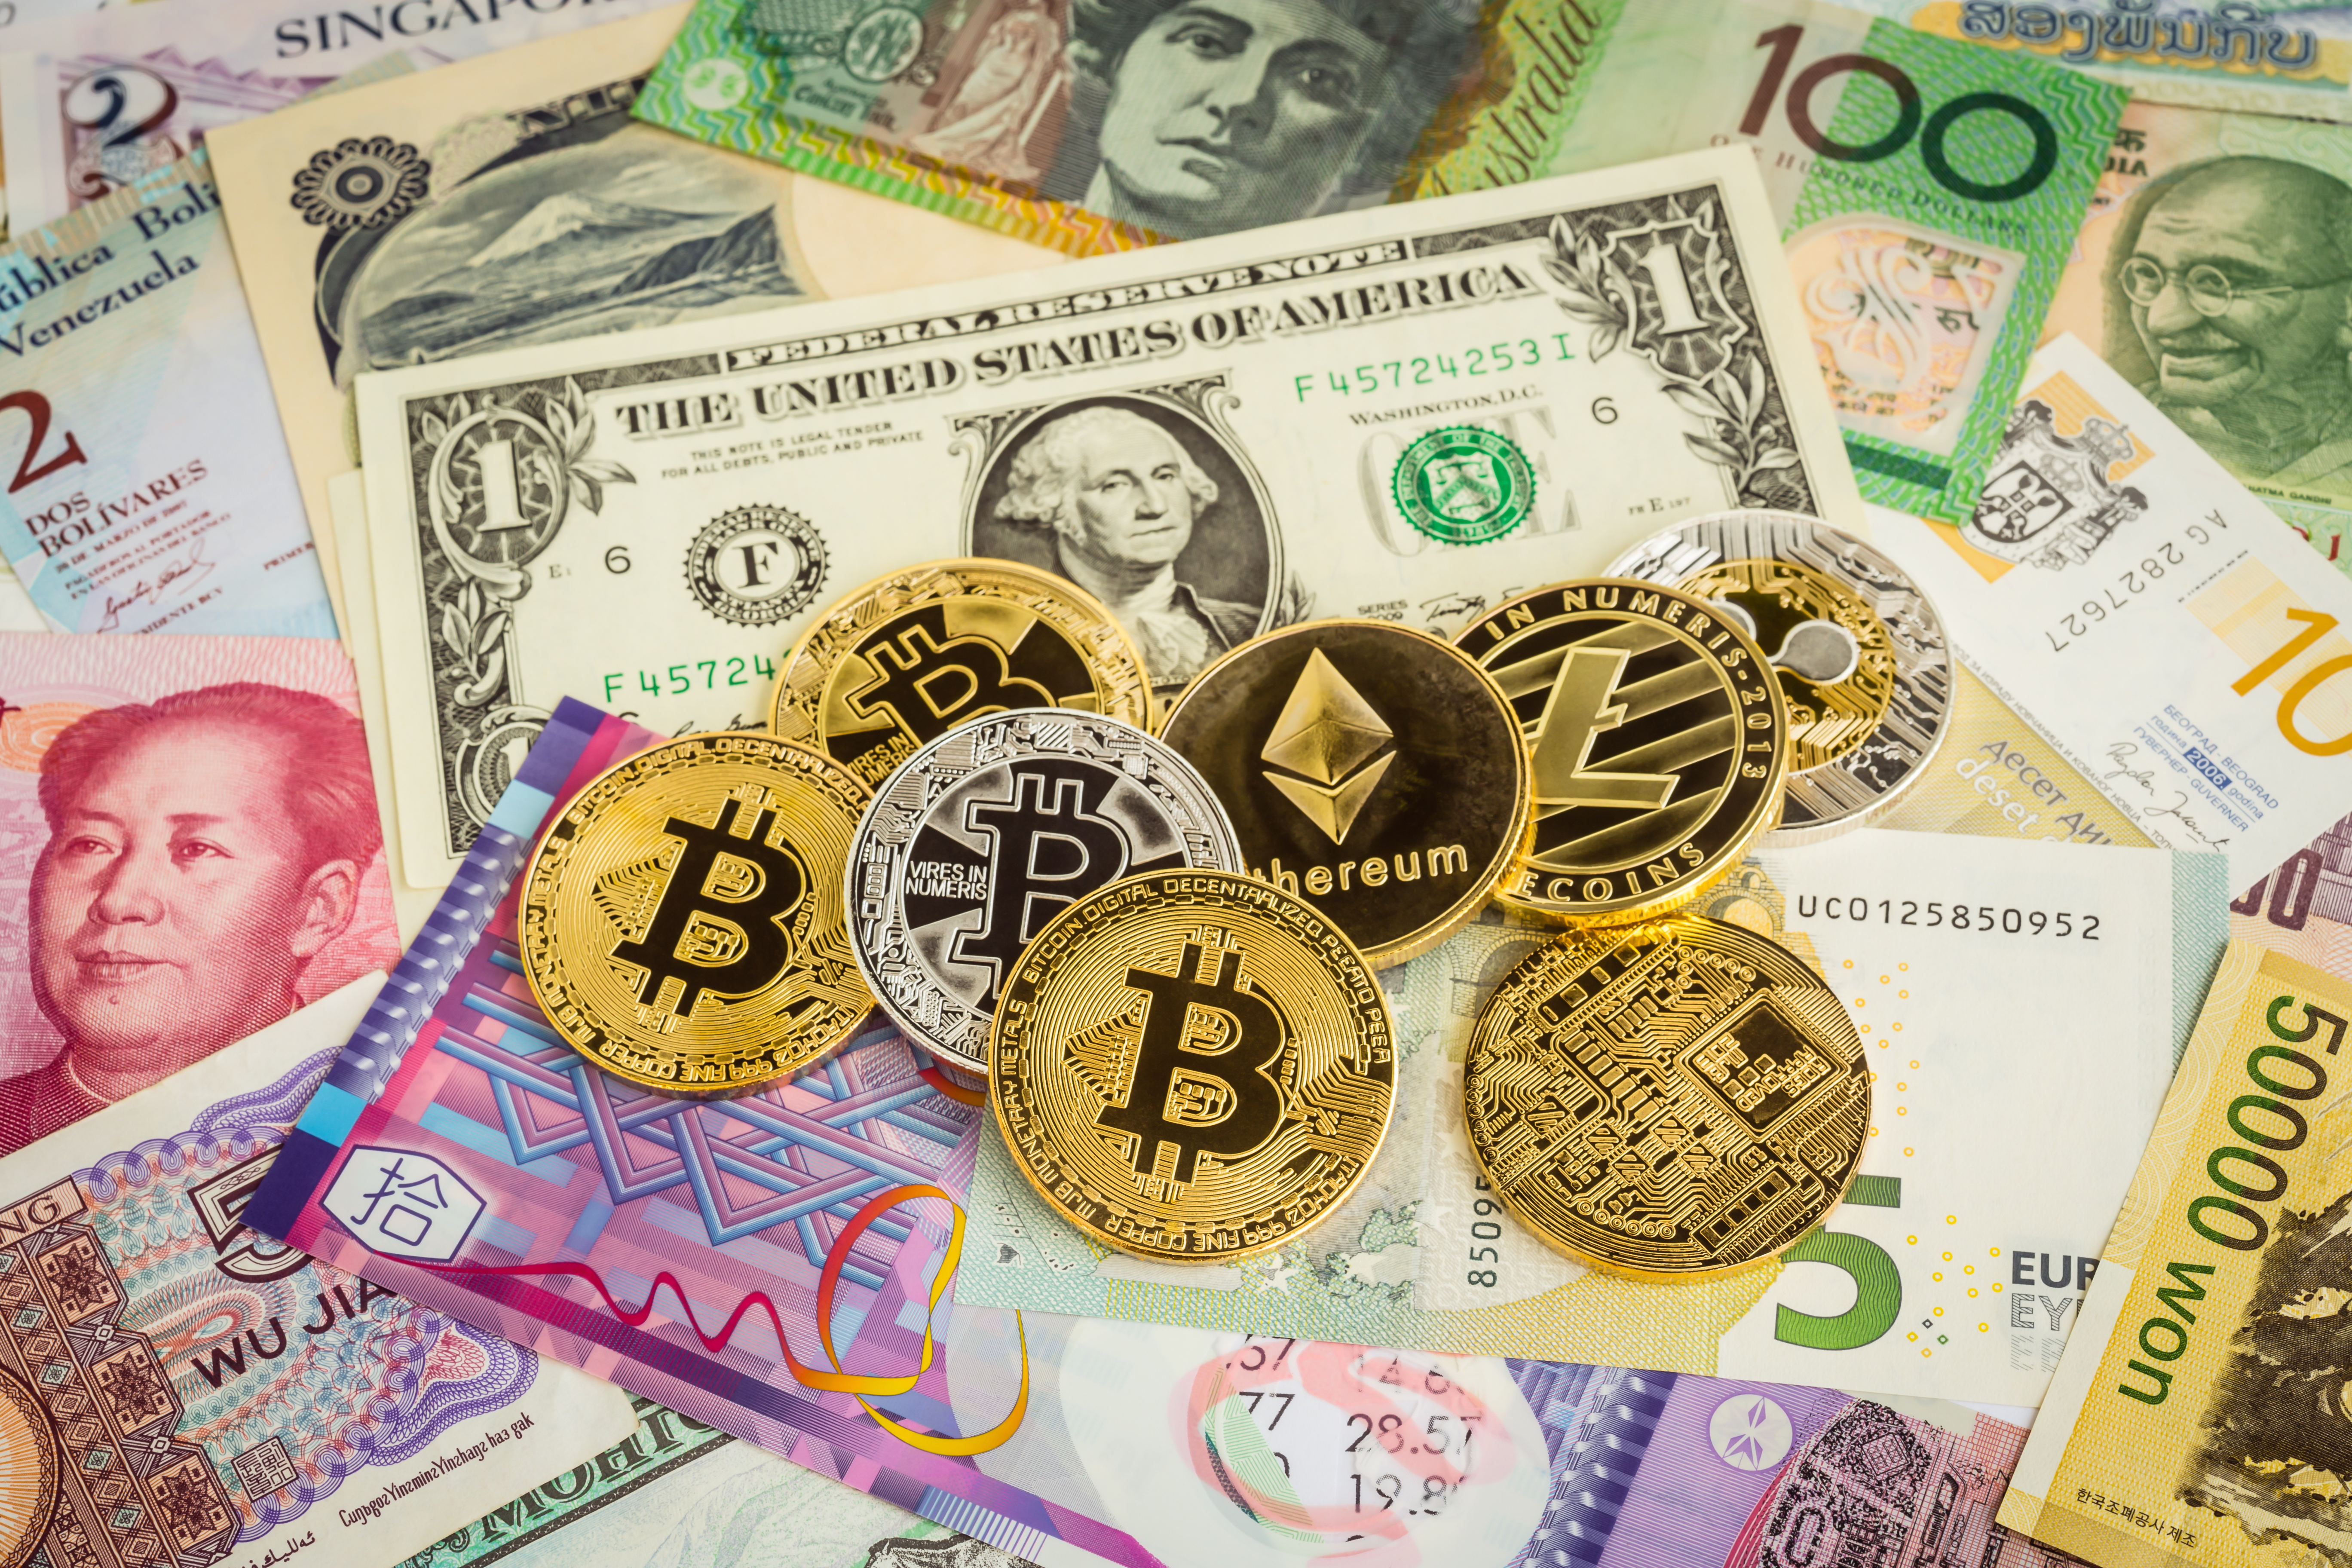 Djb crypto currency ff7 gold saucer chocobo racing betting terms